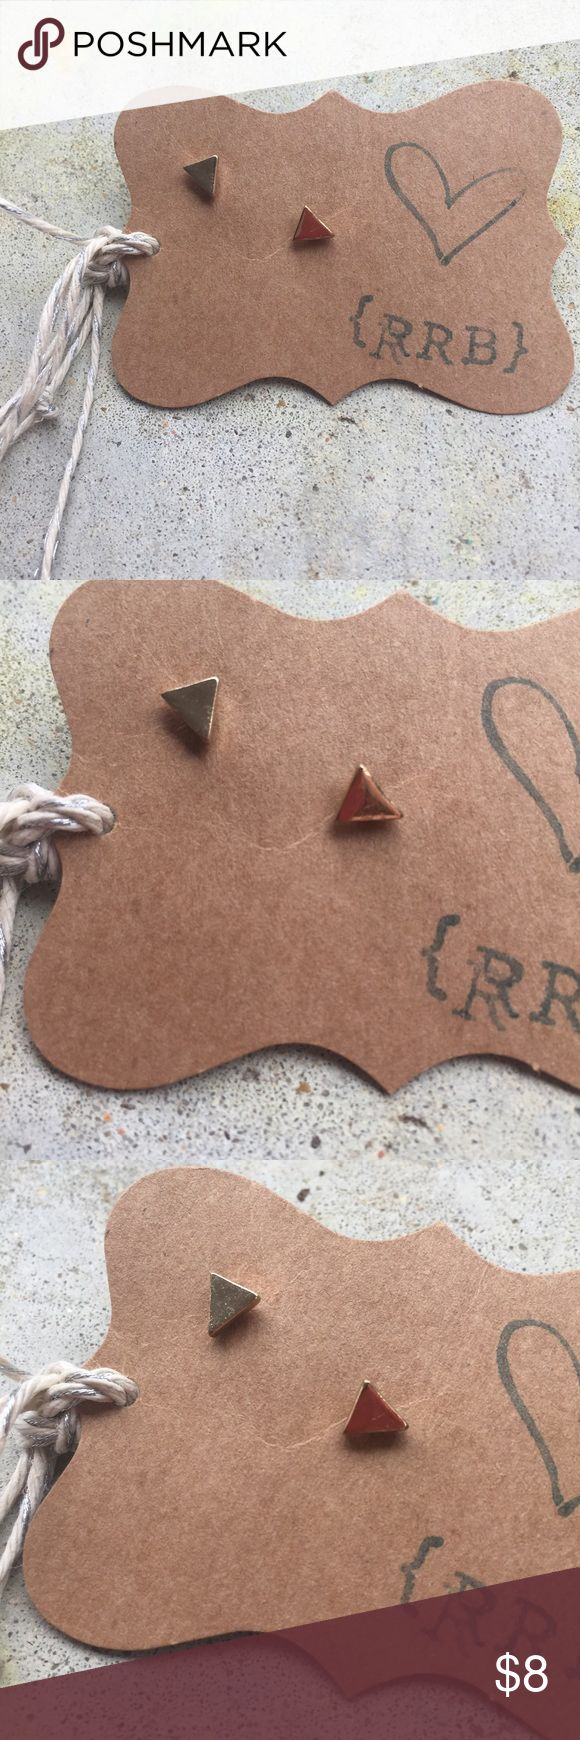 Tiny Gold-tone Triangle Studs These are about the same size as the backs. Very dainty and trendy. Gold-toned. Perfect to help dress up a tee! RRB loves offers but cannot trade at this time. ~{We are ALL beautiful.}~ Jewelry Earrings